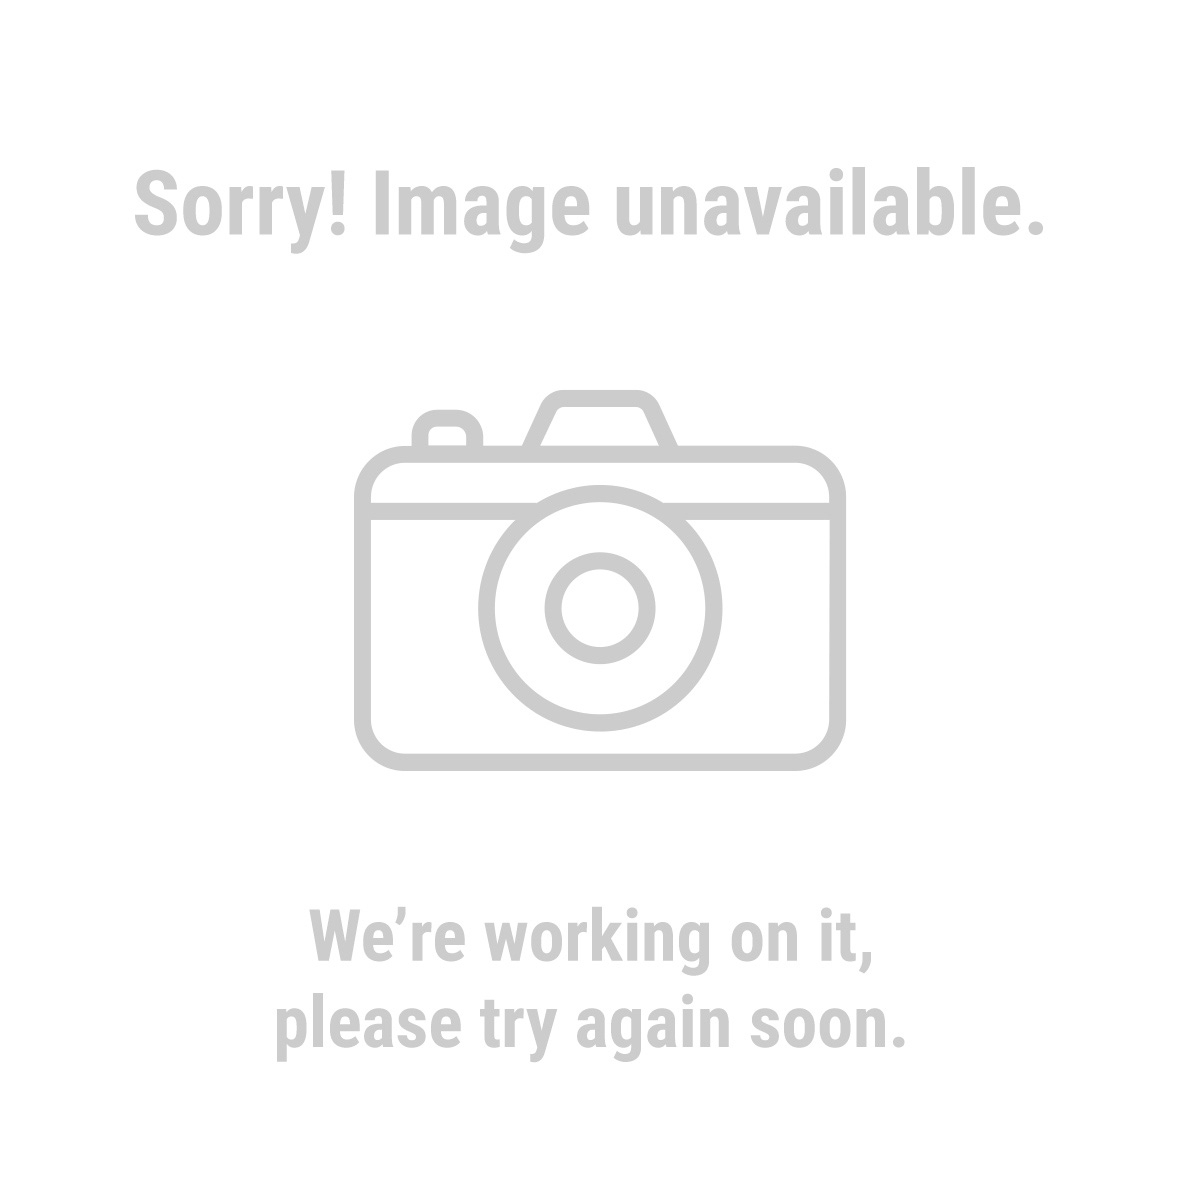 Pittsburgh Automotive 69814 20 Gallon Portable Oil Lift Drain